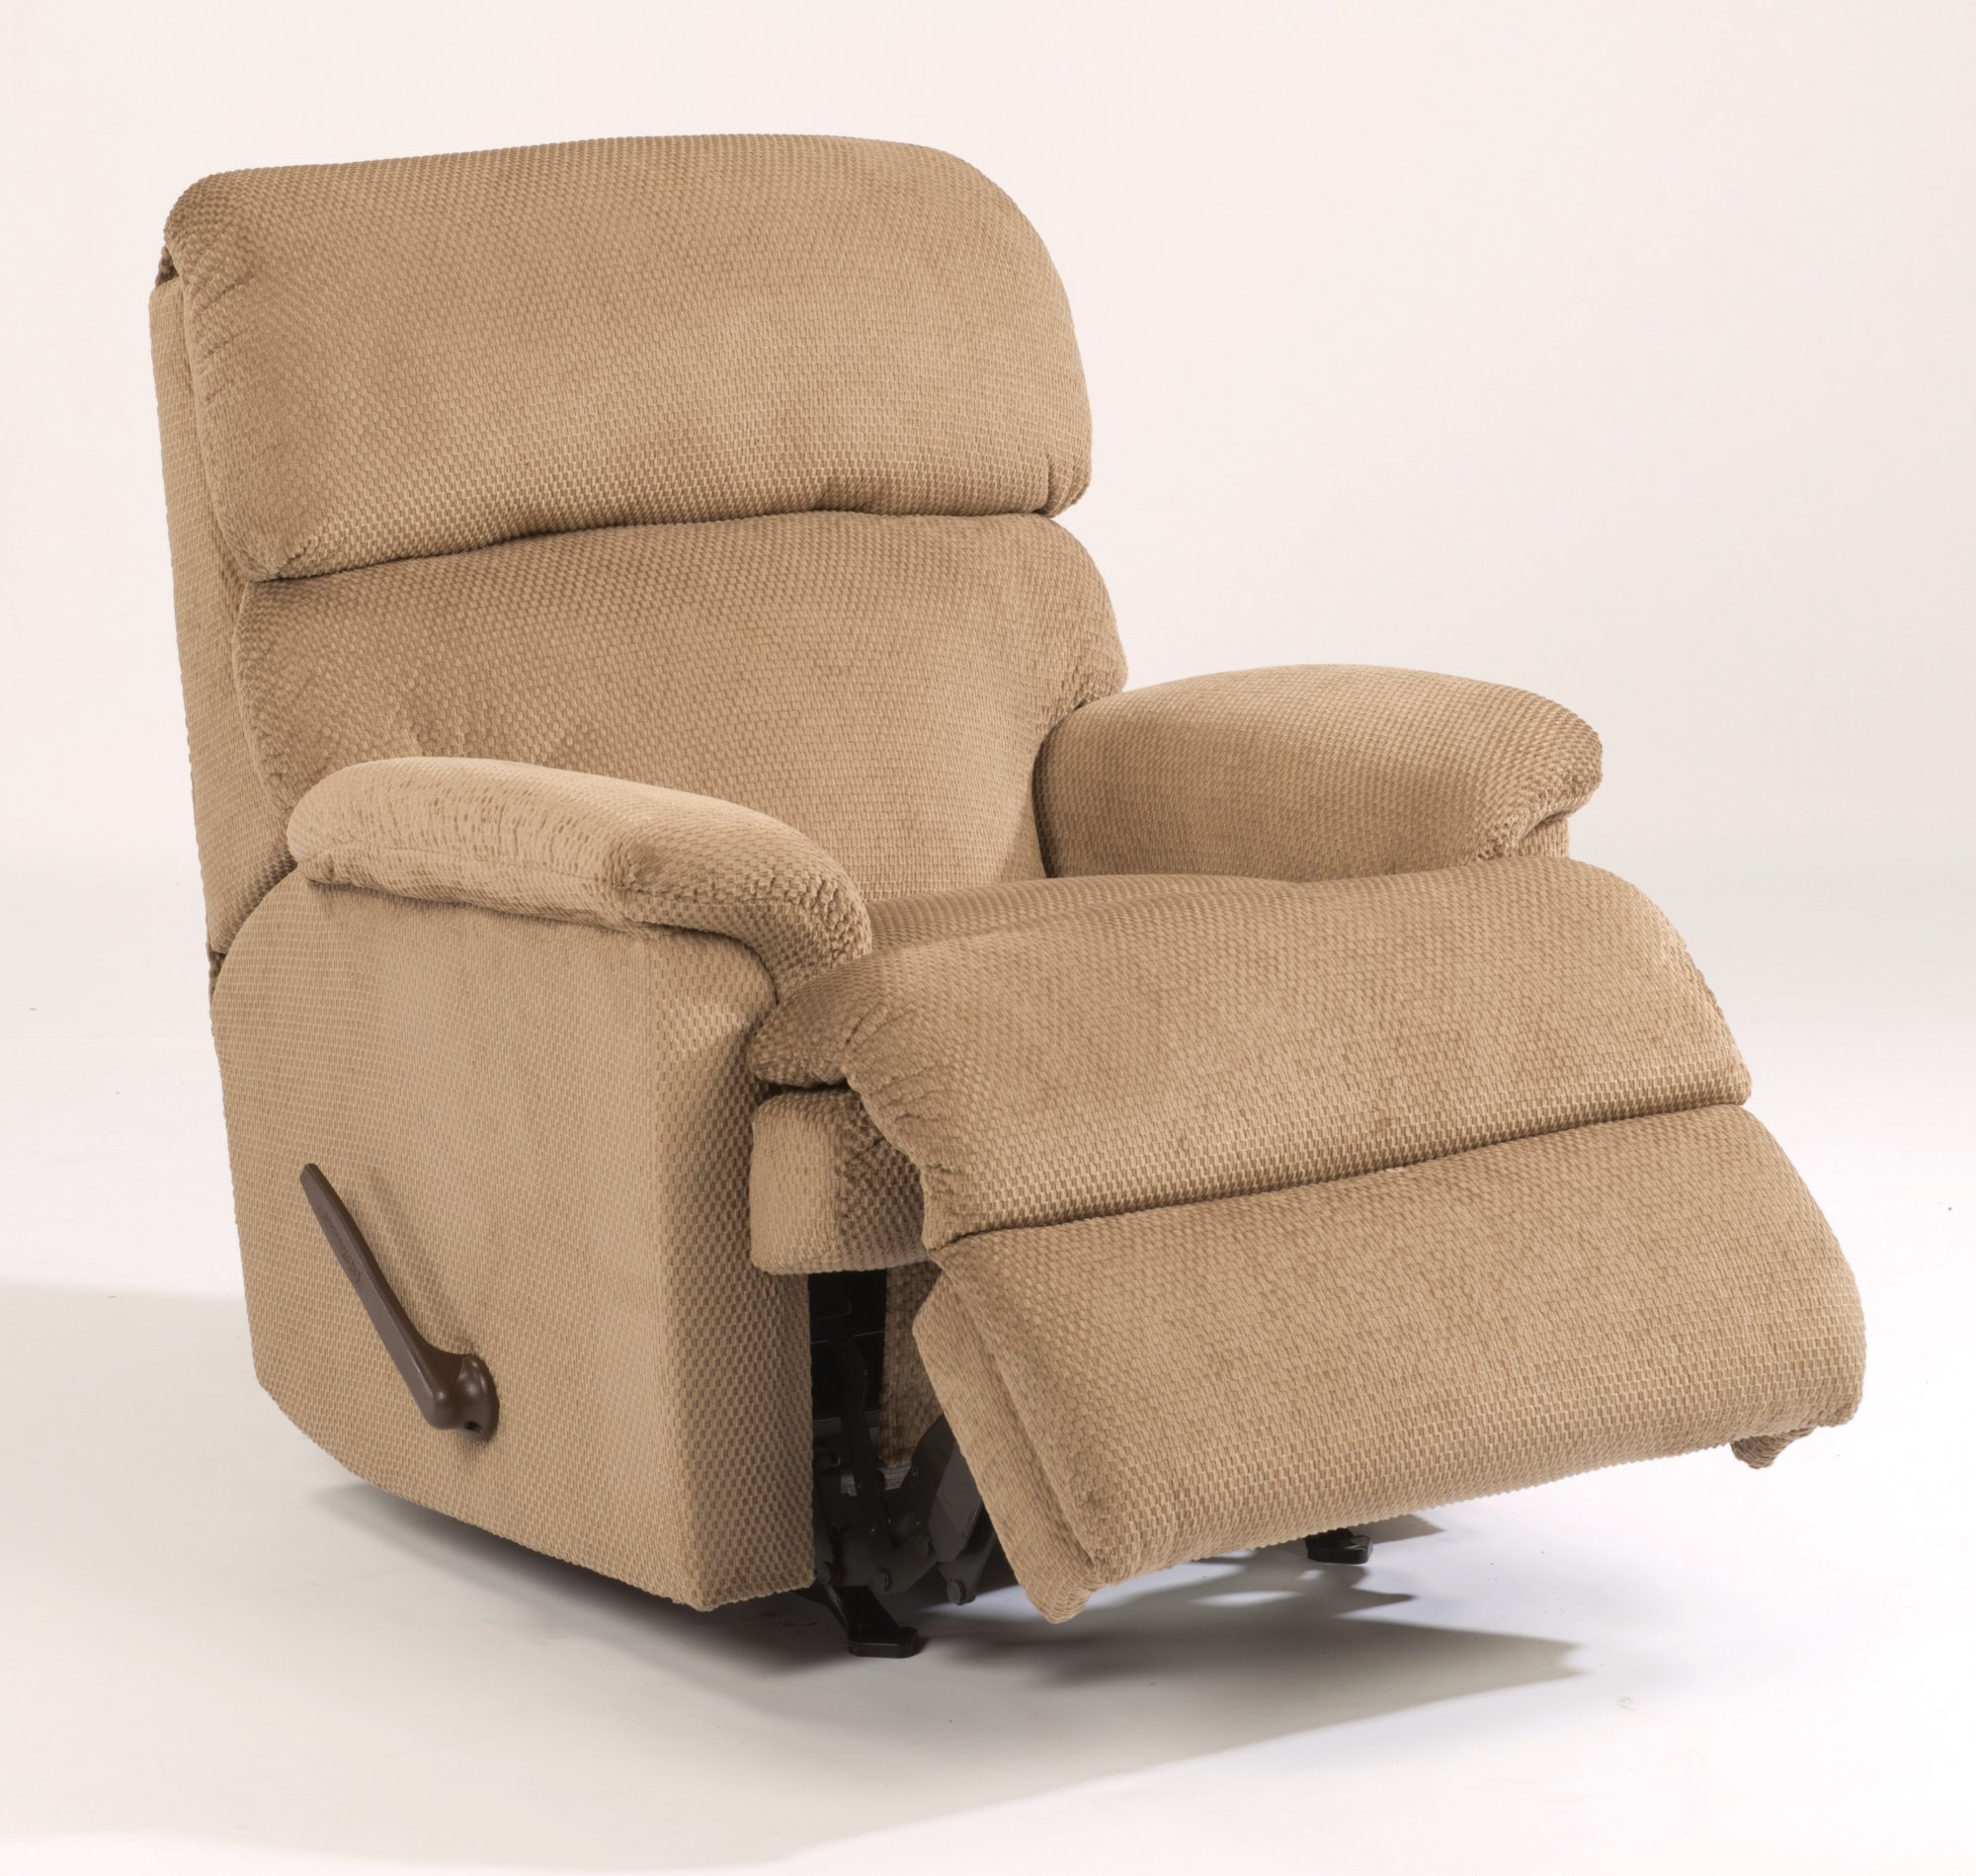 Peachy Flexsteel 2266 500 Chicago Fabric Recliner Highway Caraccident5 Cool Chair Designs And Ideas Caraccident5Info